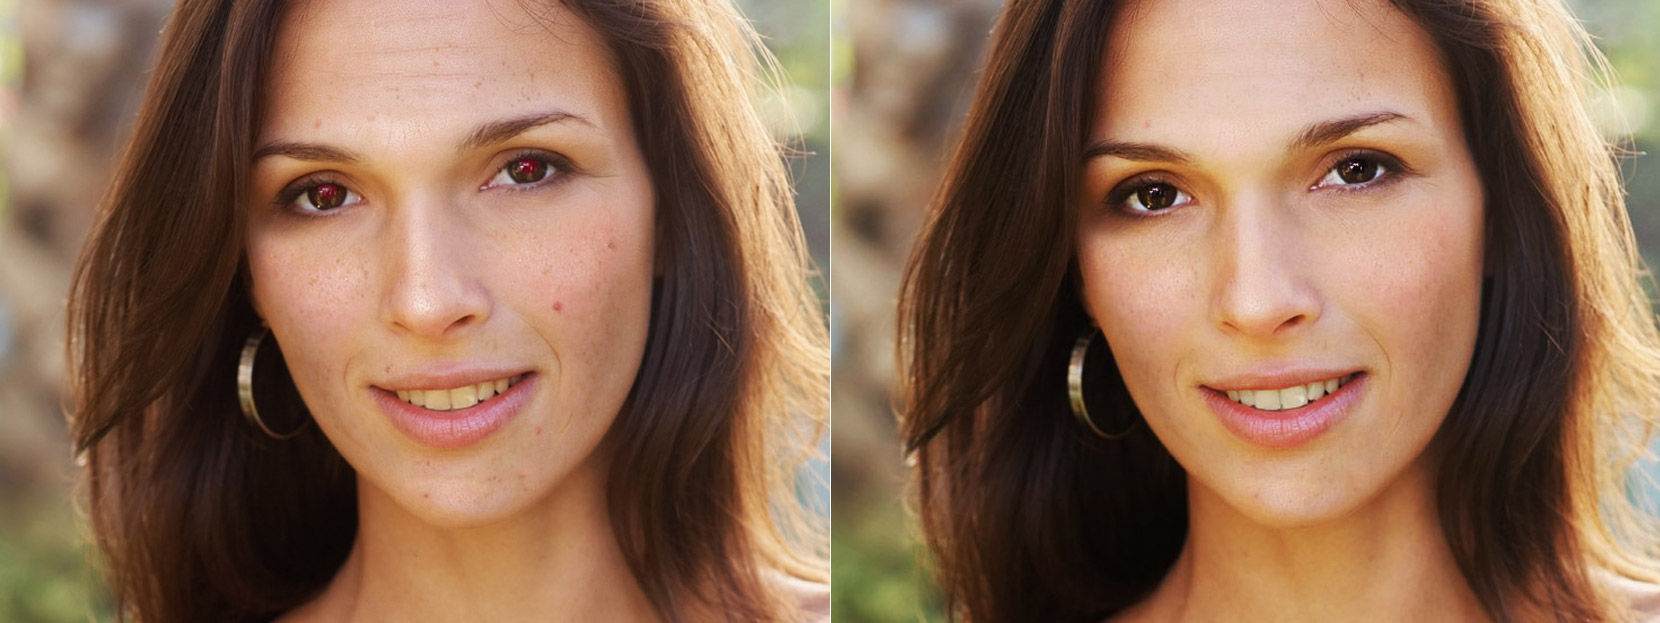 Before and after face retouch on Makeup.Pho.to